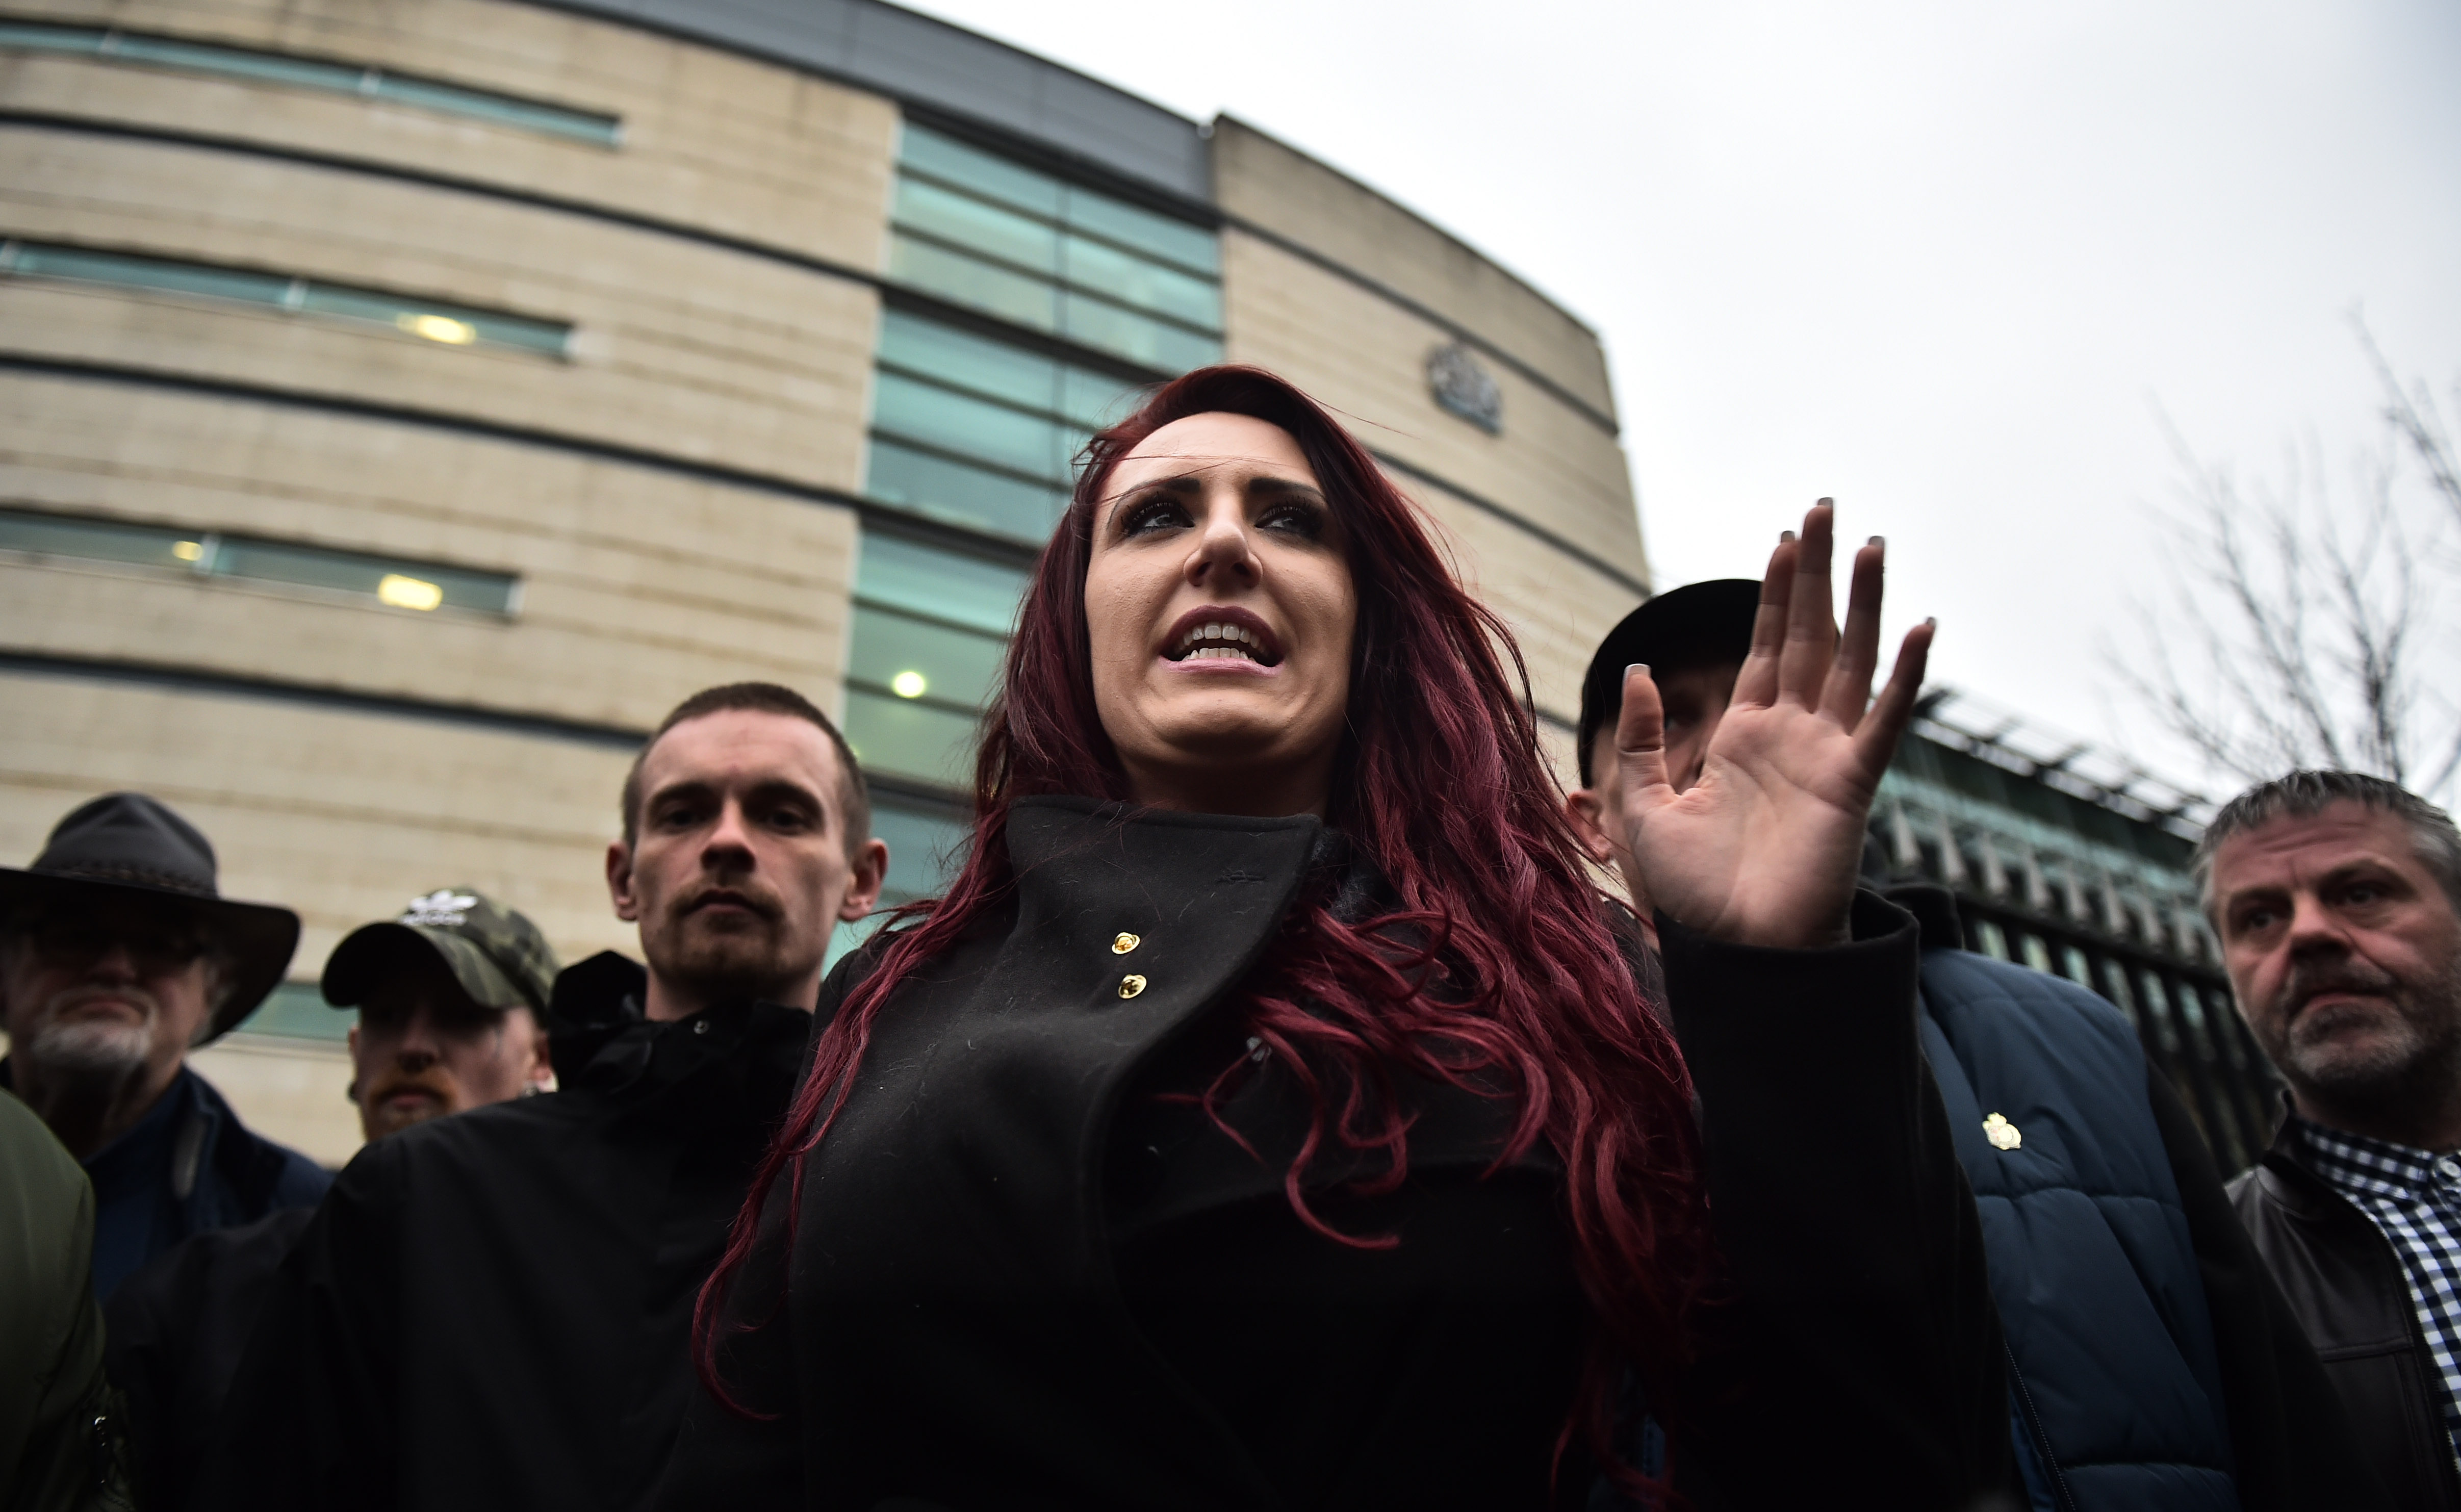 Britain First leader and deputy leader guilty of hate crimes